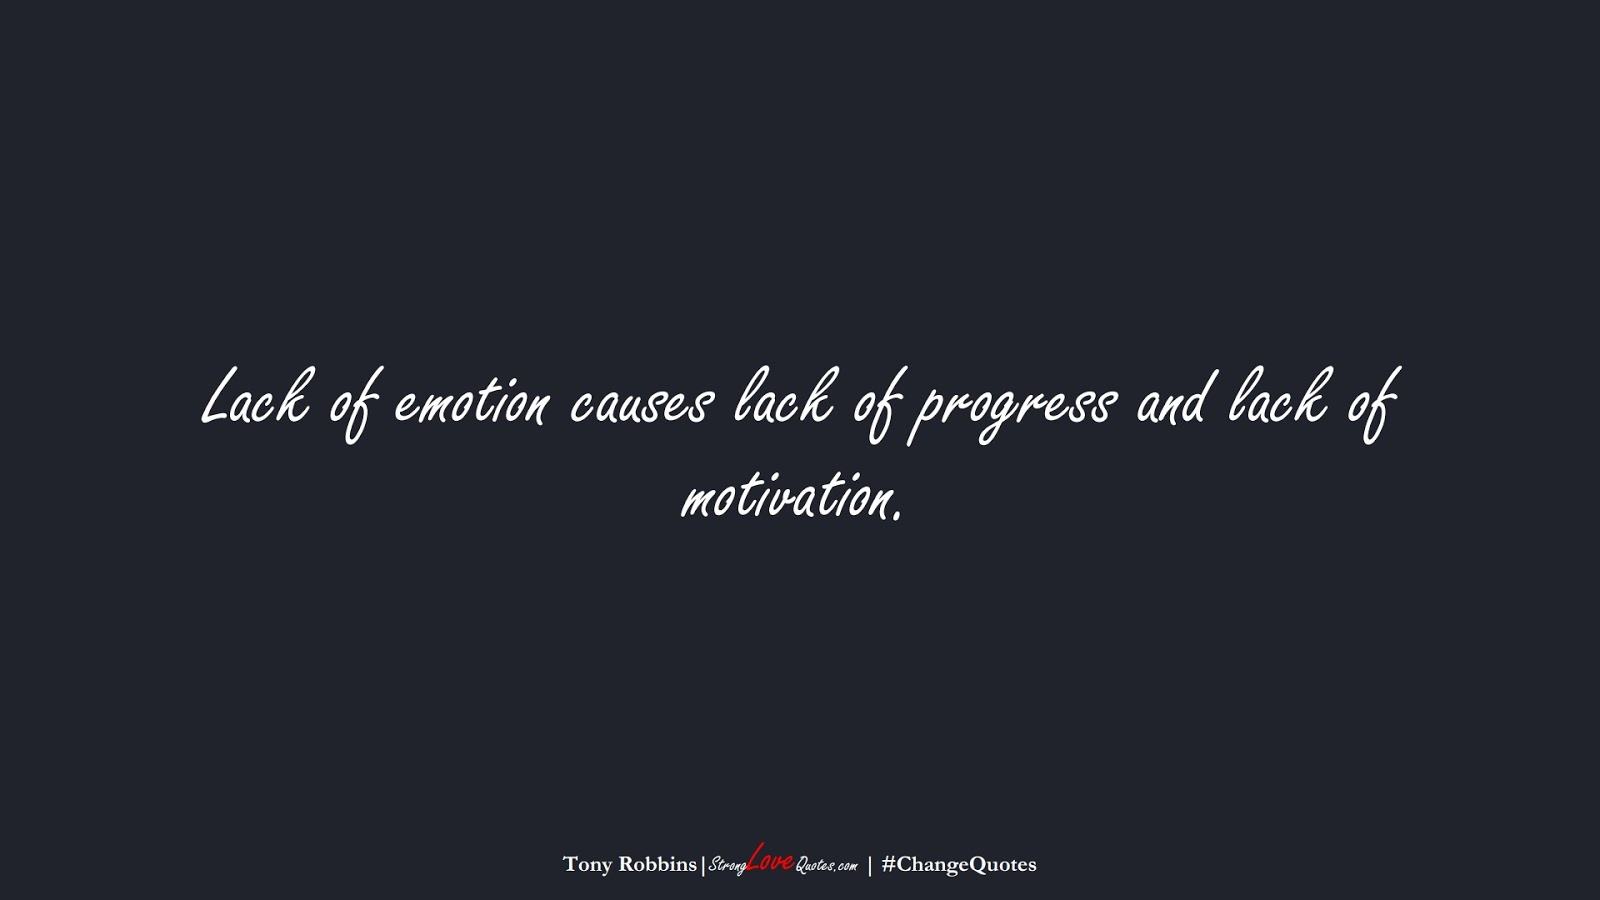 Lack of emotion causes lack of progress and lack of motivation. (Tony Robbins);  #ChangeQuotes